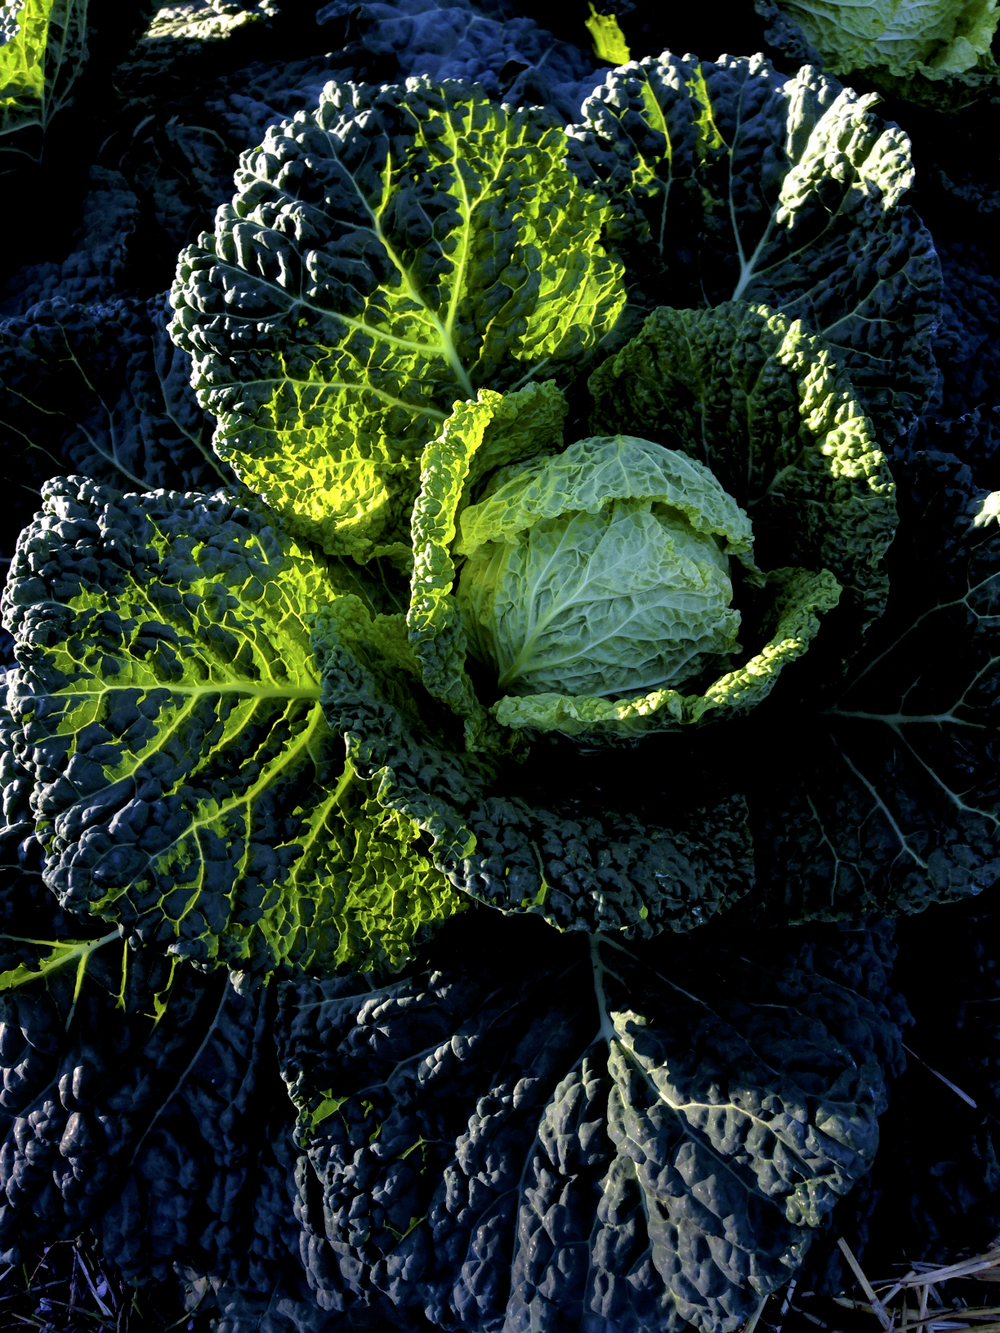 First light touches some very pampered cabbage in The French Laundry Garden in Yountville, Napa Valley